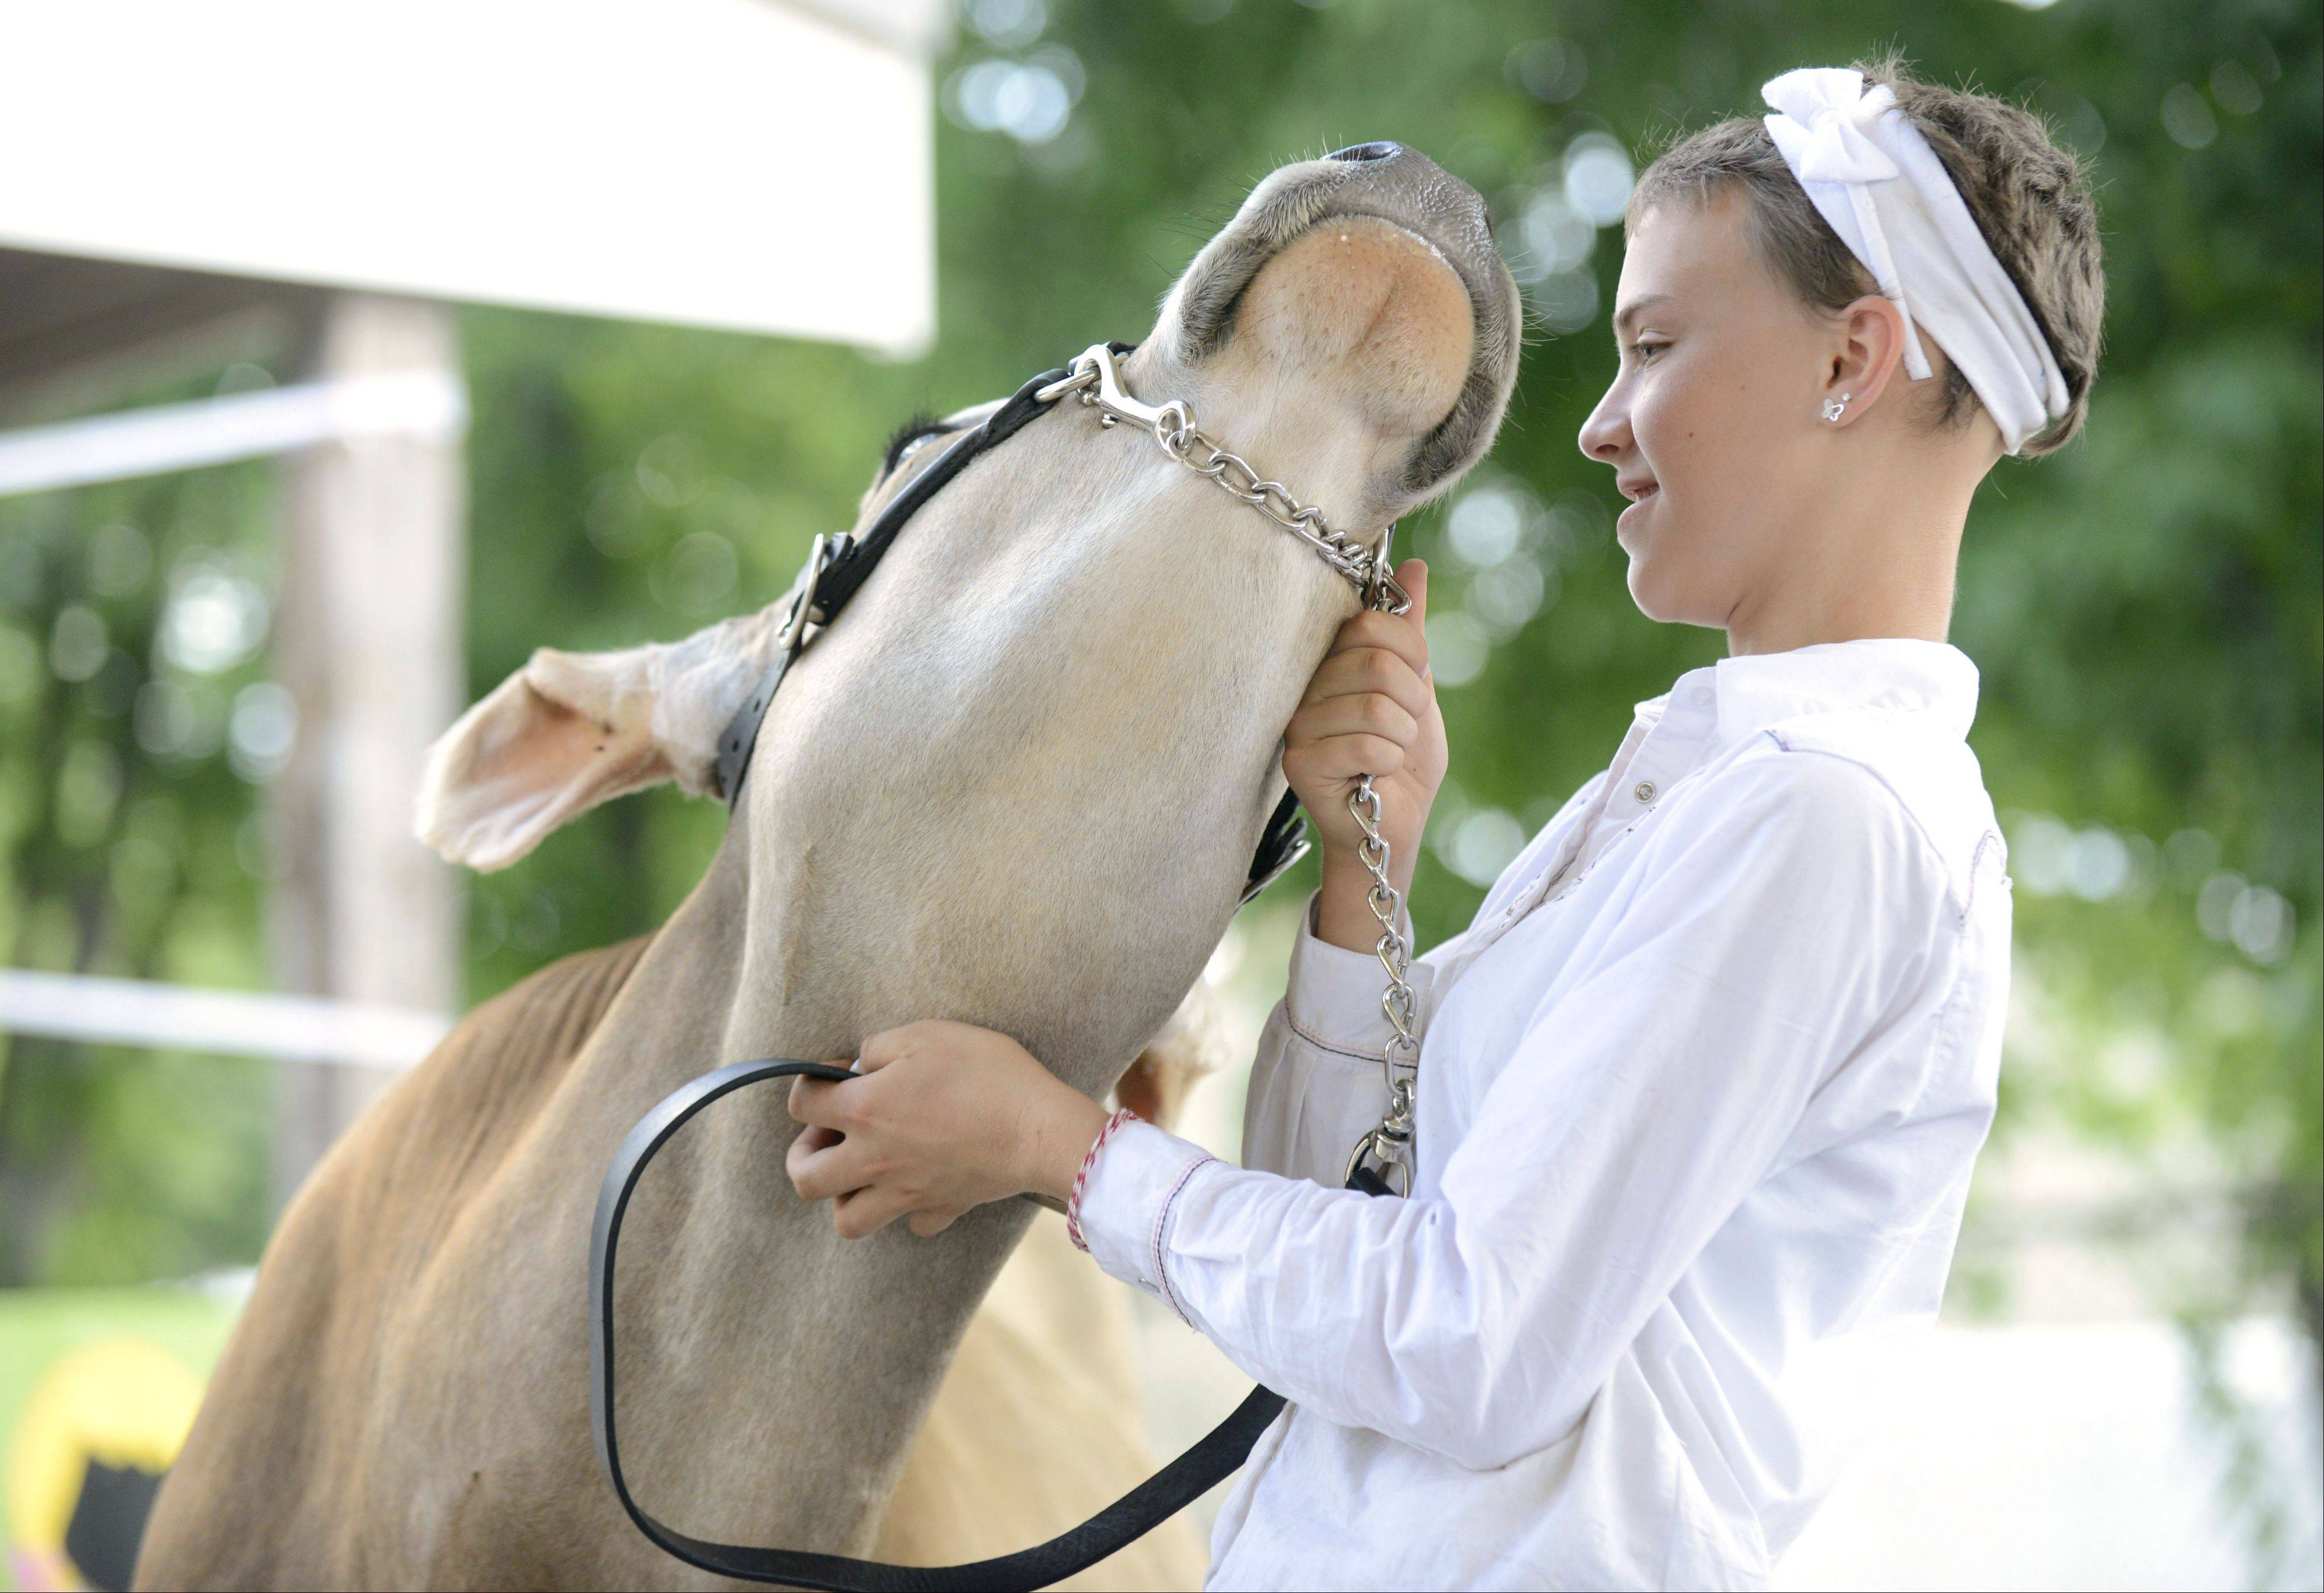 Emily Thompson, 12, of St. Charles, and the 4-H Primrose Clovers gives Clover a soothing scratch on her neck as they wait to show Thursday in the Jersey Junior Yearling Class Champion event at the Kane County Fair. It was Thompson's second year showing for 4-H group, which is based at Primrose Farm Park in St. Charles.